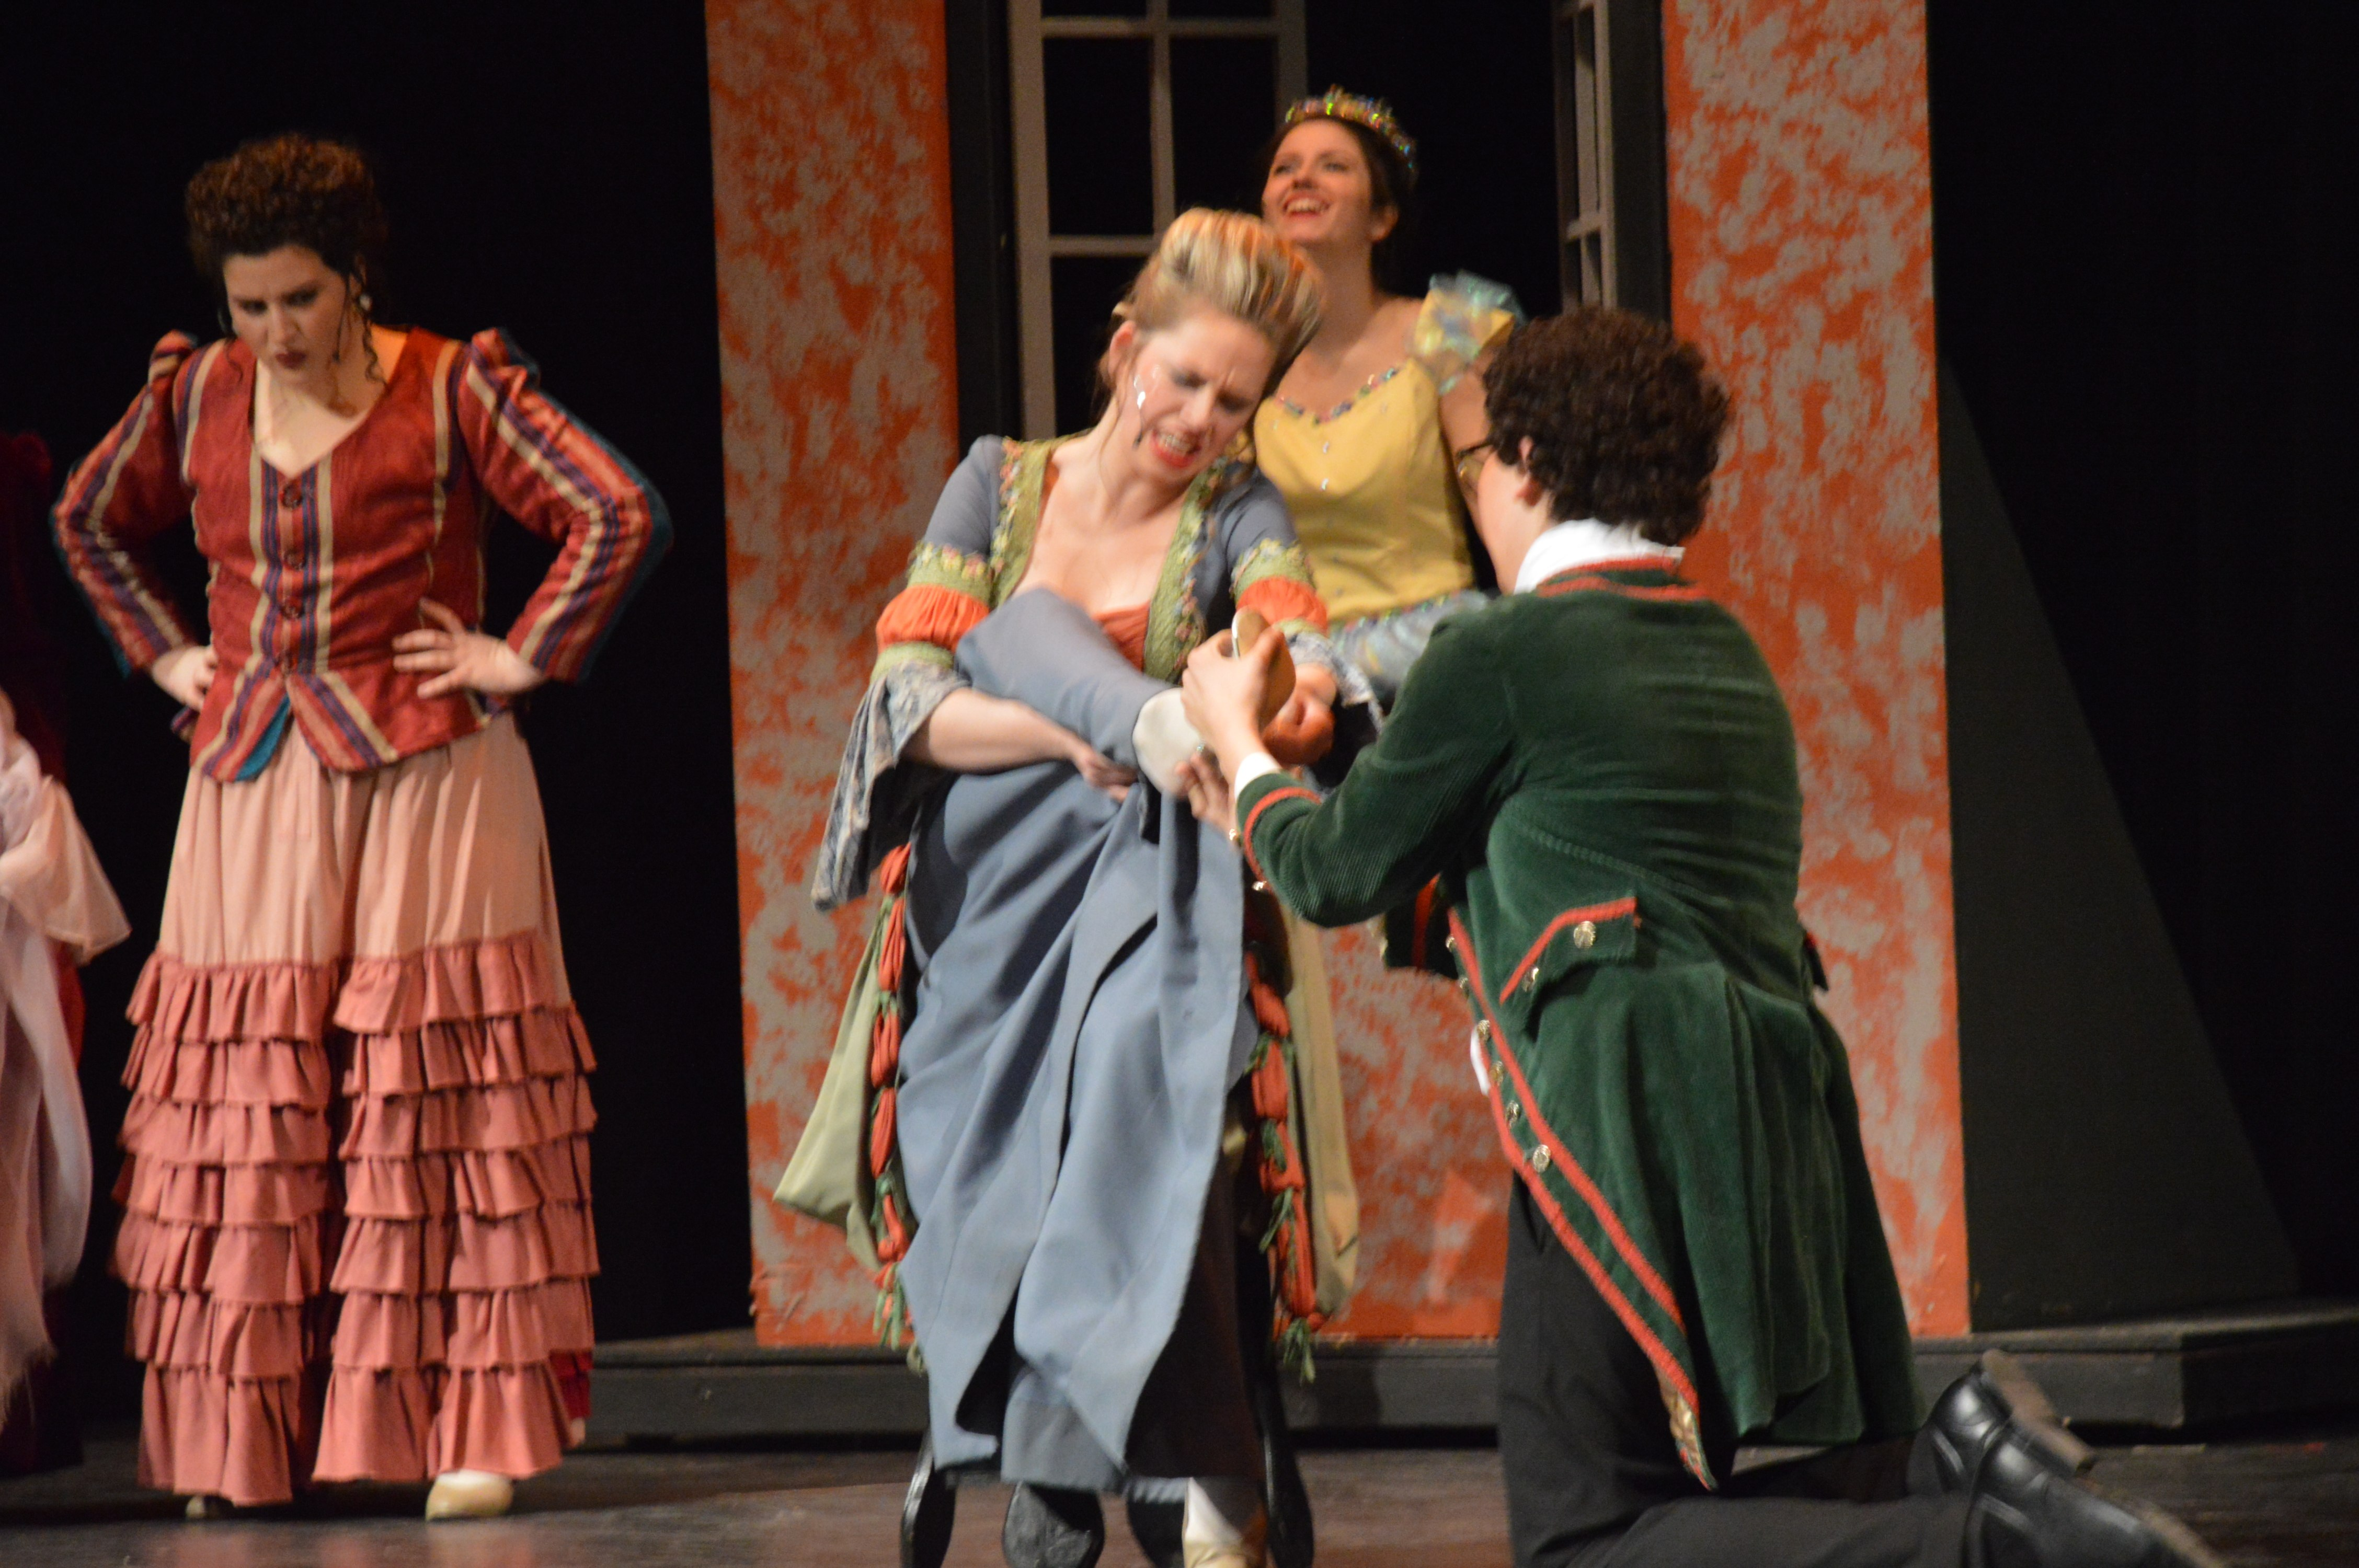 Stepsister, Caitlyn Skiba, tries to force her foot into the shoe so that she may marry the Prince.